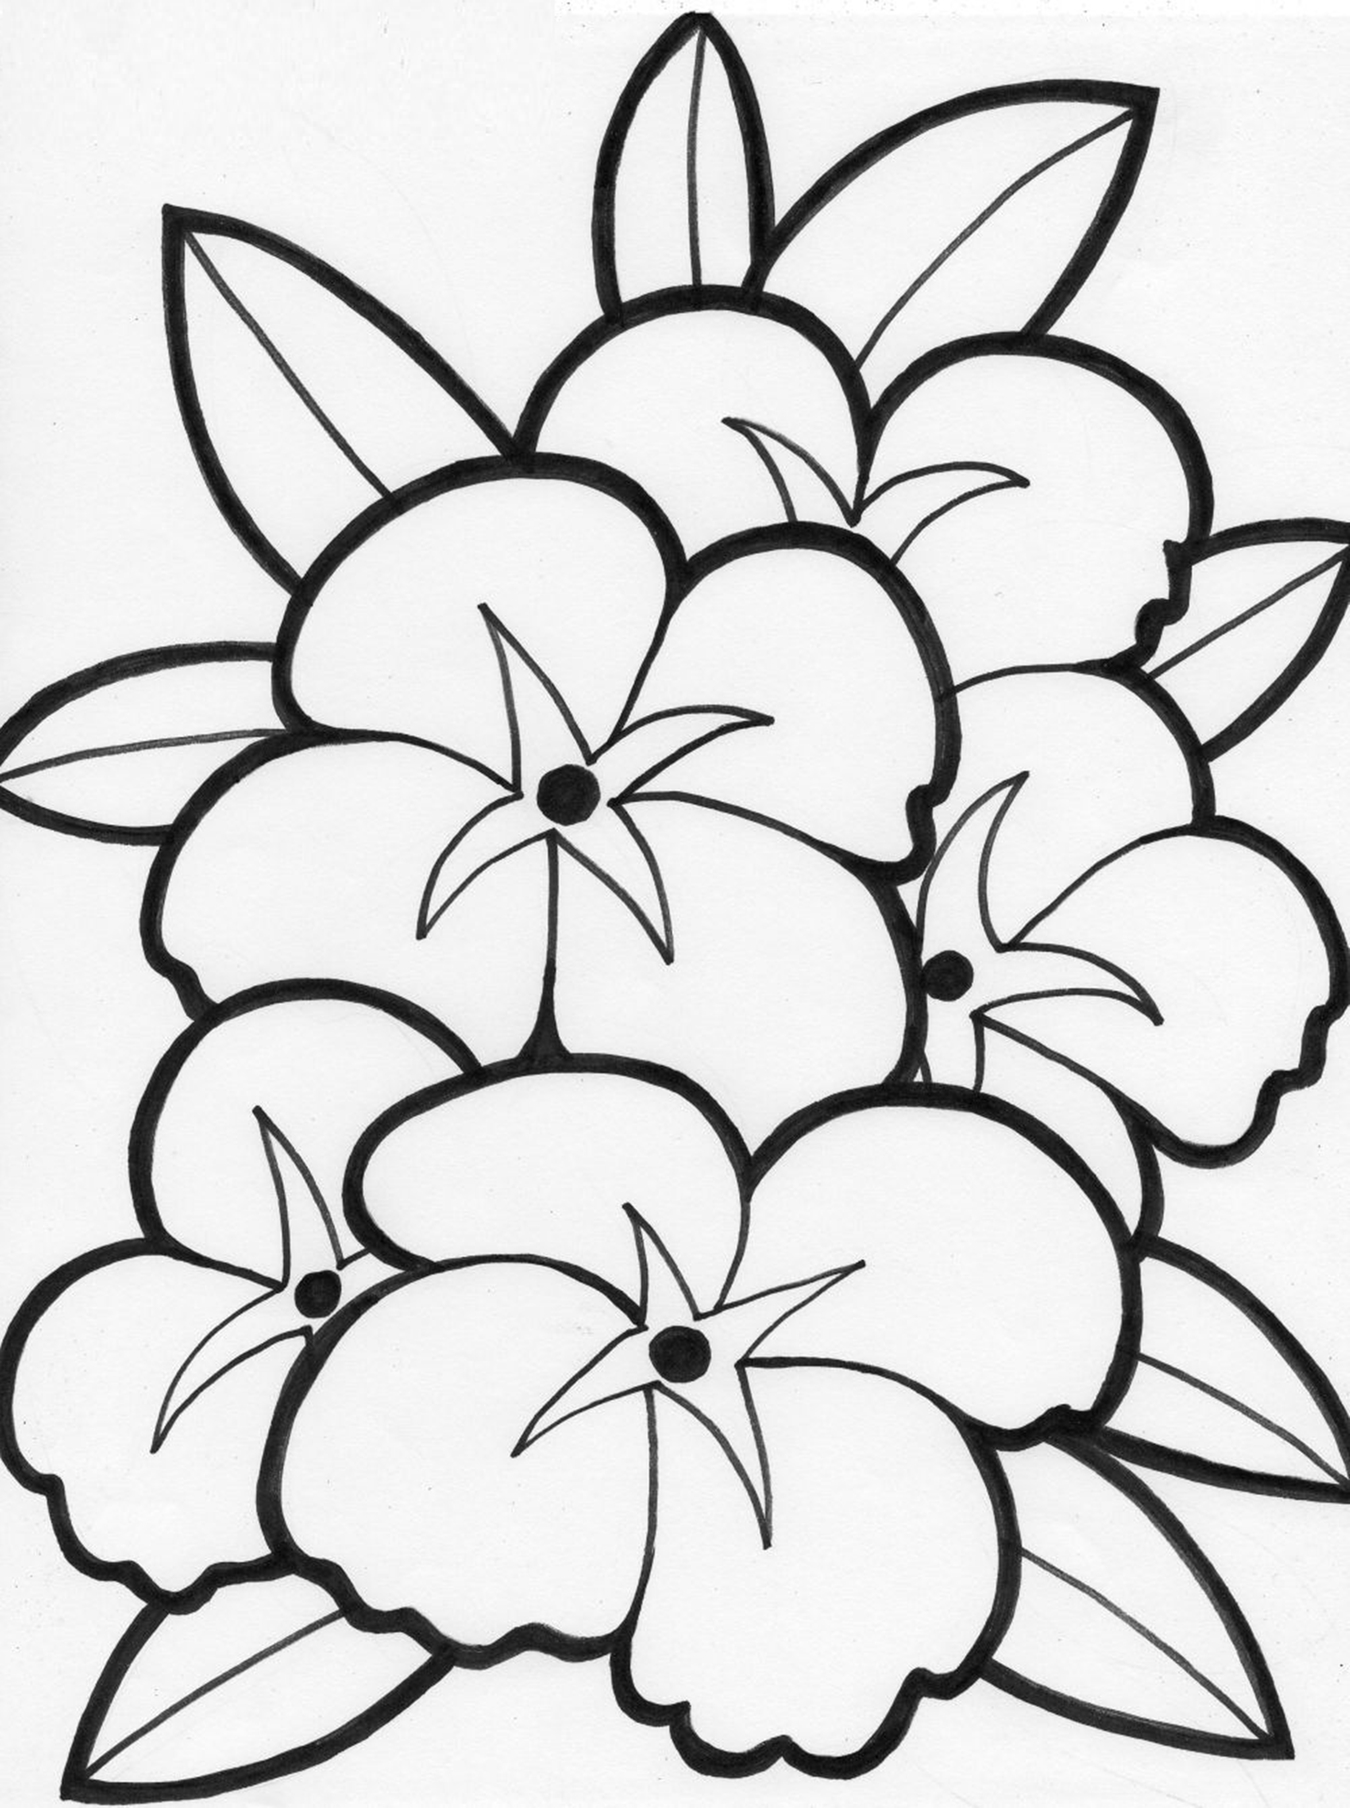 Free Printable Flower Coloring Pages Cool Free Printable Flower Coloring Pages For Kids  Best Coloring .